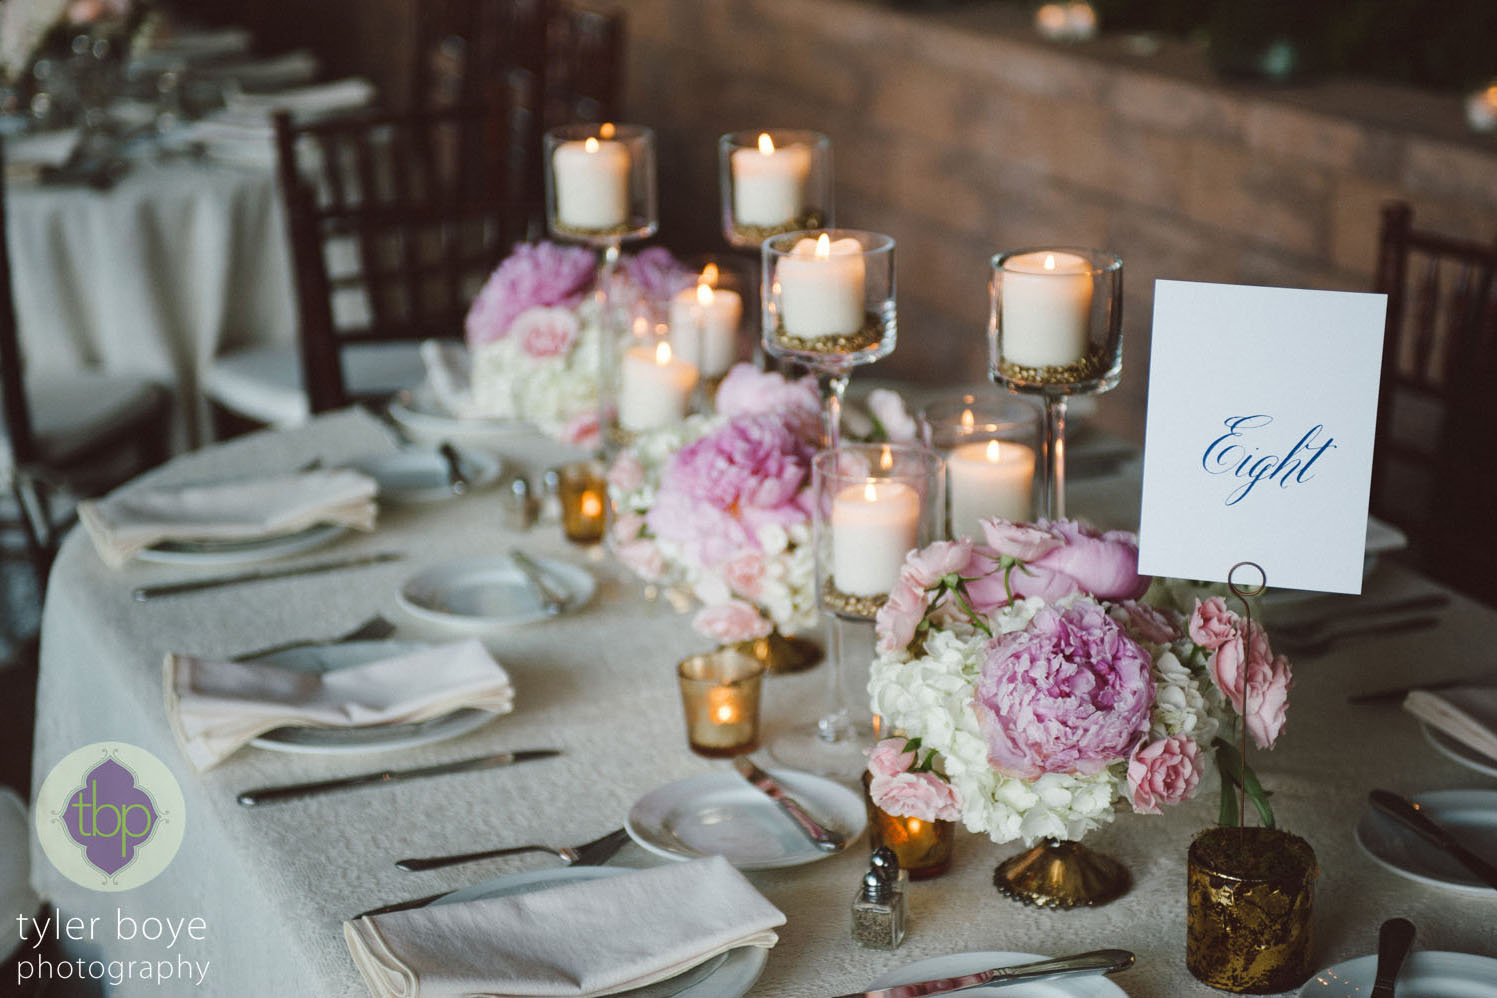 Tyler Boye Photography   |  Wedding Reception  |  Manor House at Prophecy Park, Ambler, PA